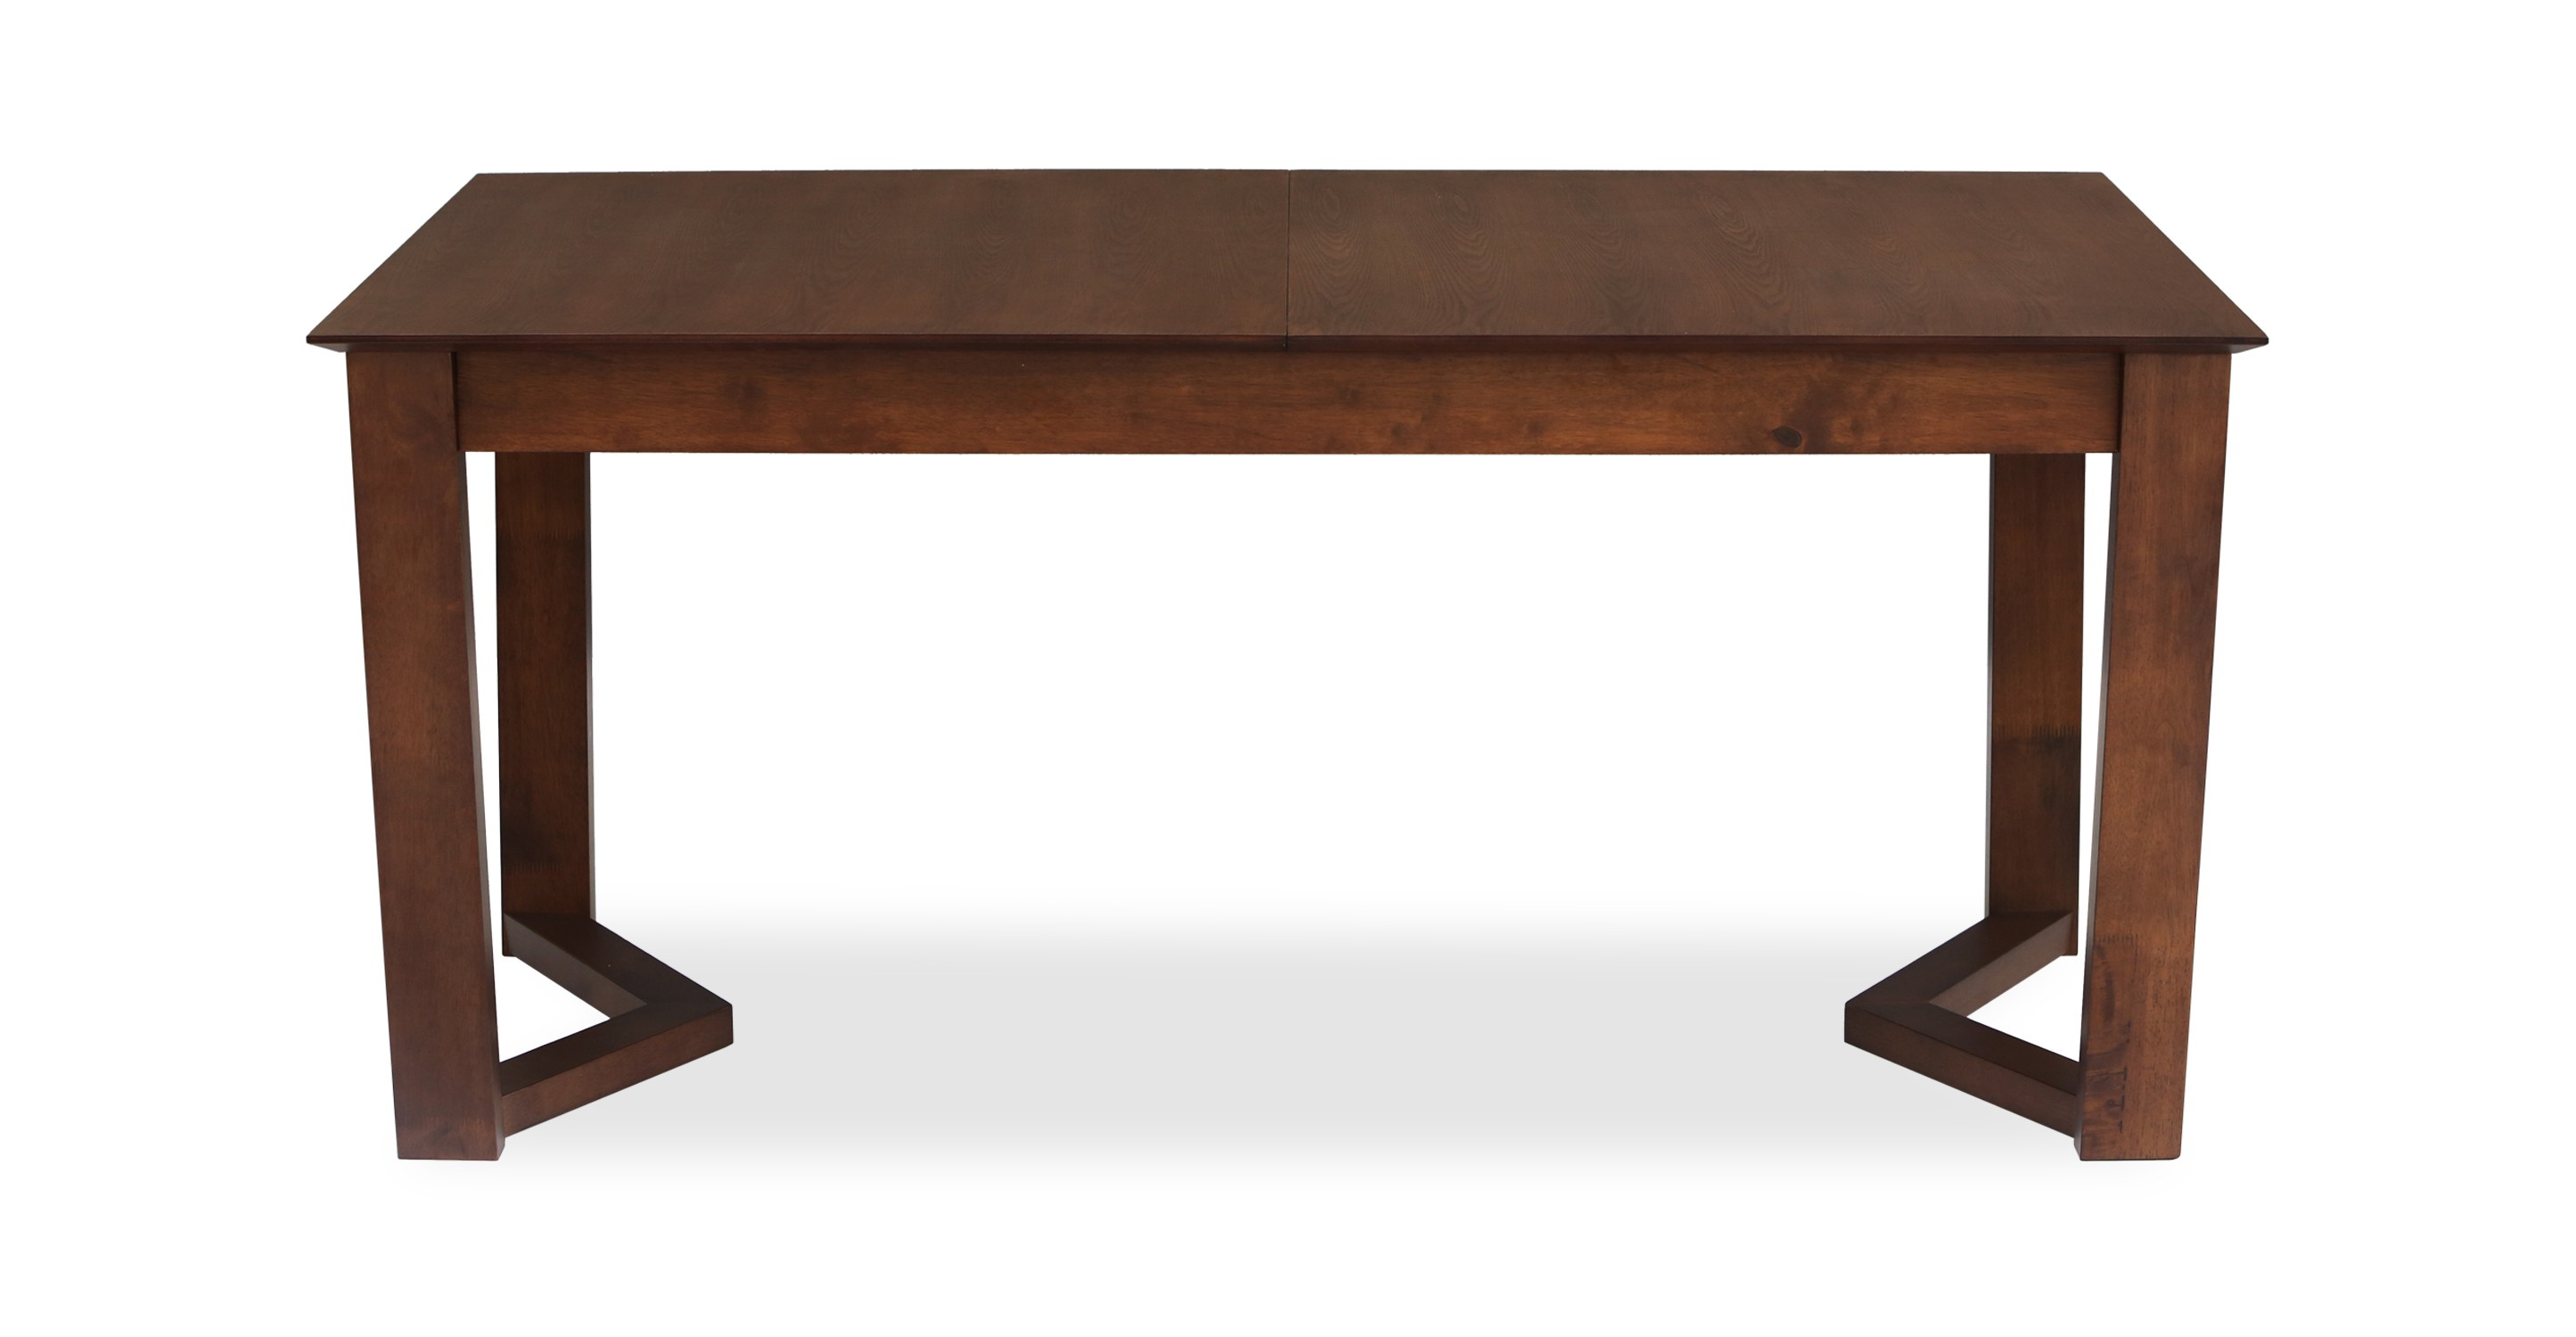 Vitas Expandable Dining Table Dining Tables Article  : image6254 from www.bryght.com size 2890 x 1500 jpeg 190kB